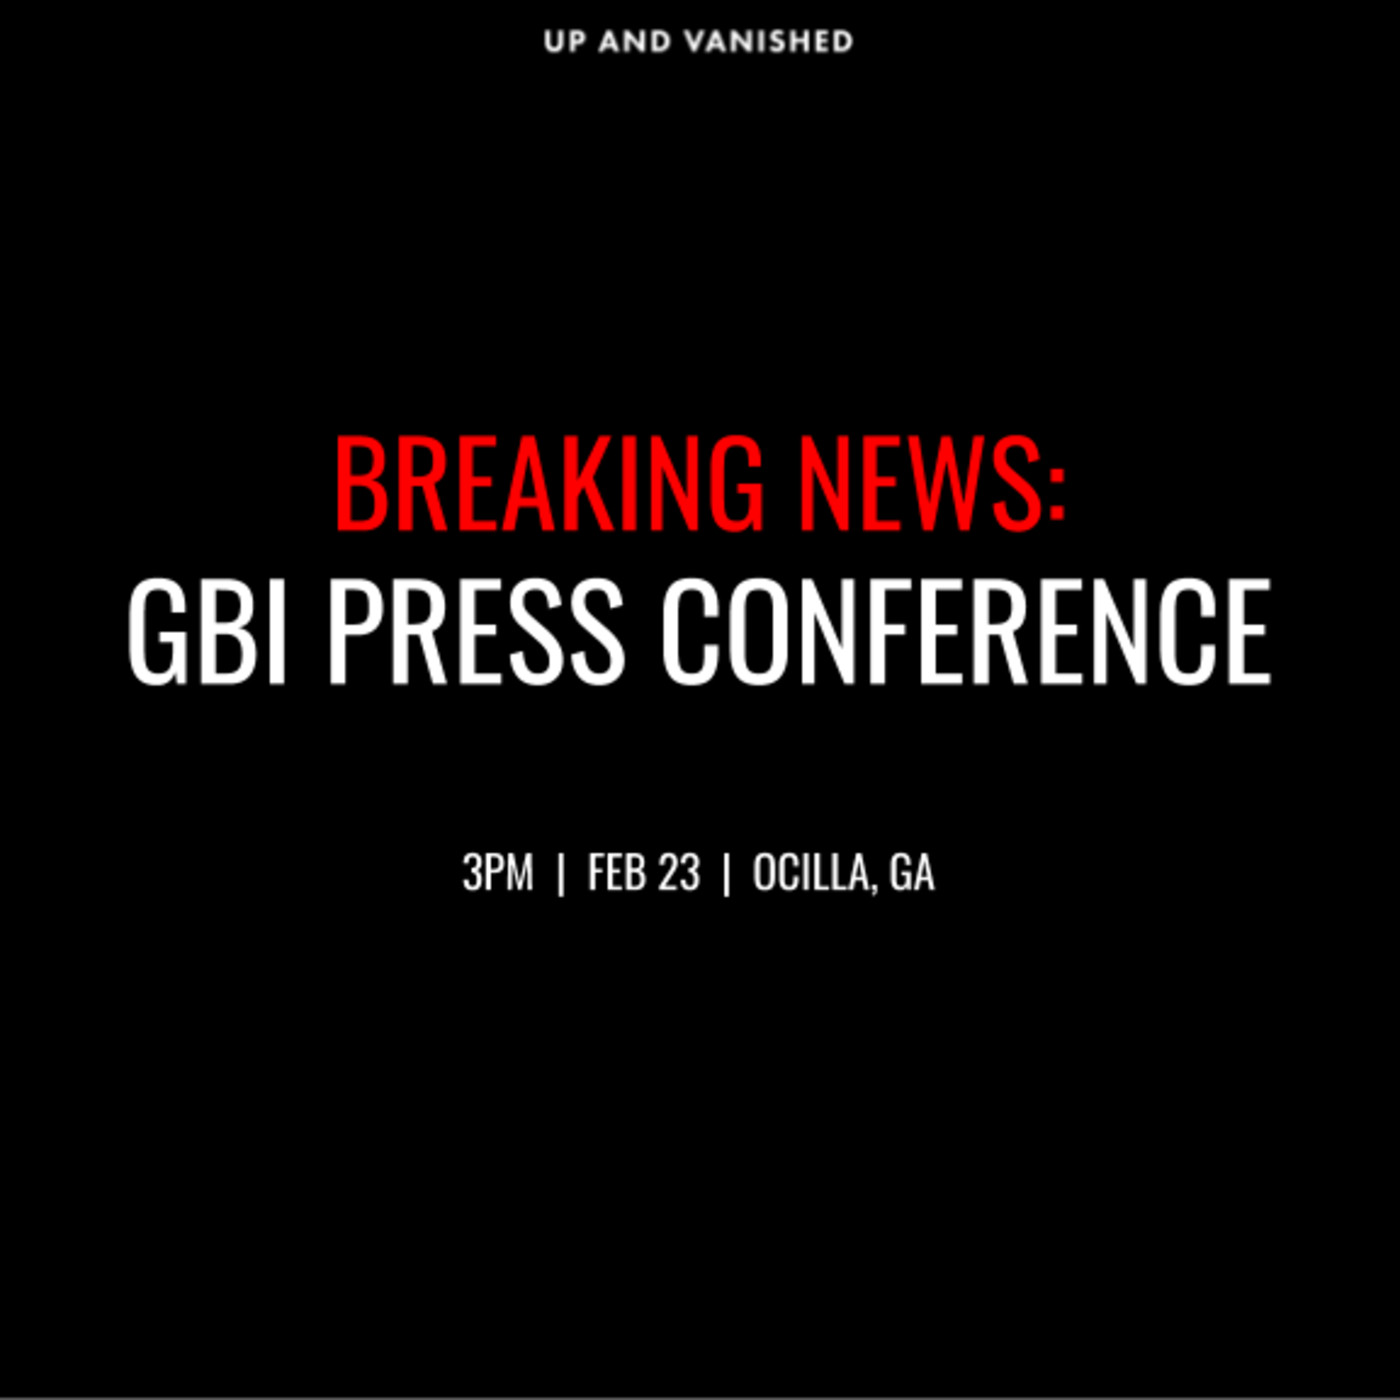 S1E : BREAKING NEWS: GBI Press Conference